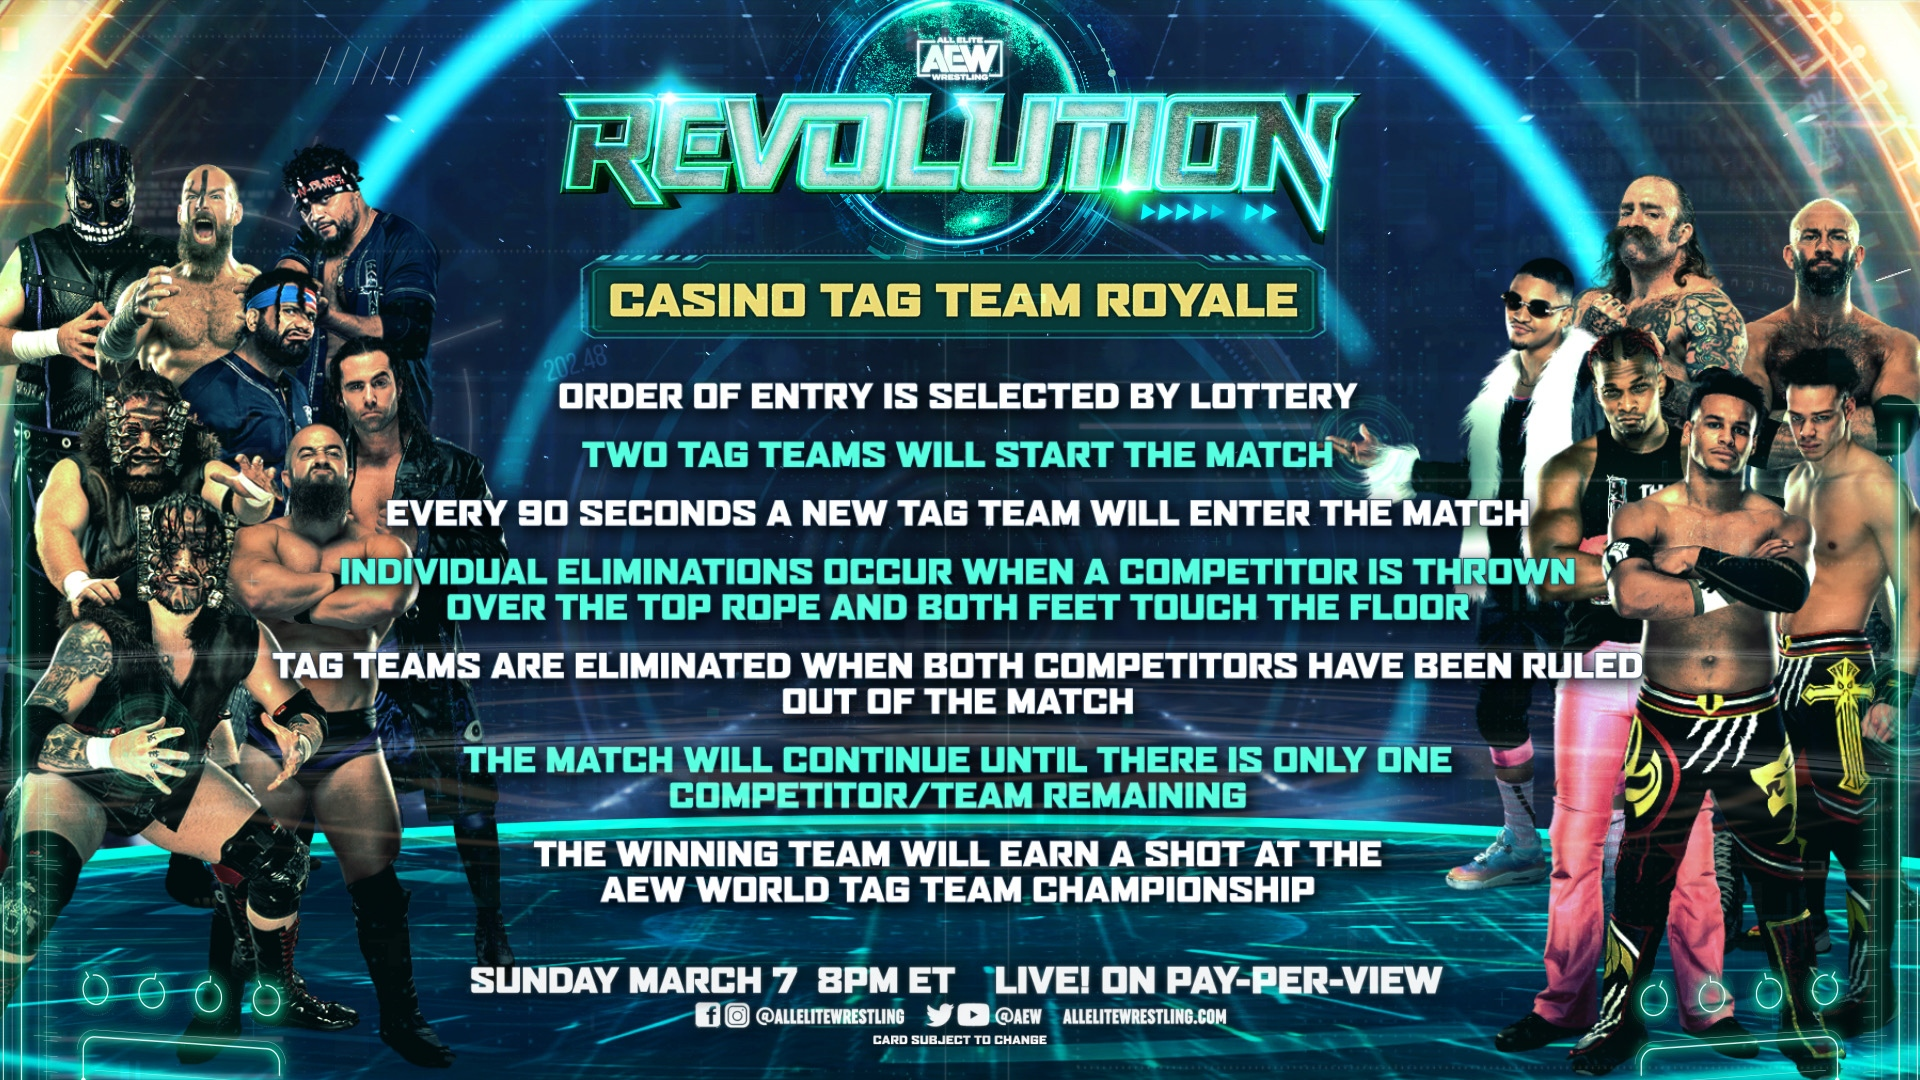 AEW Announces Rules For Casino Tag Team Royale Match